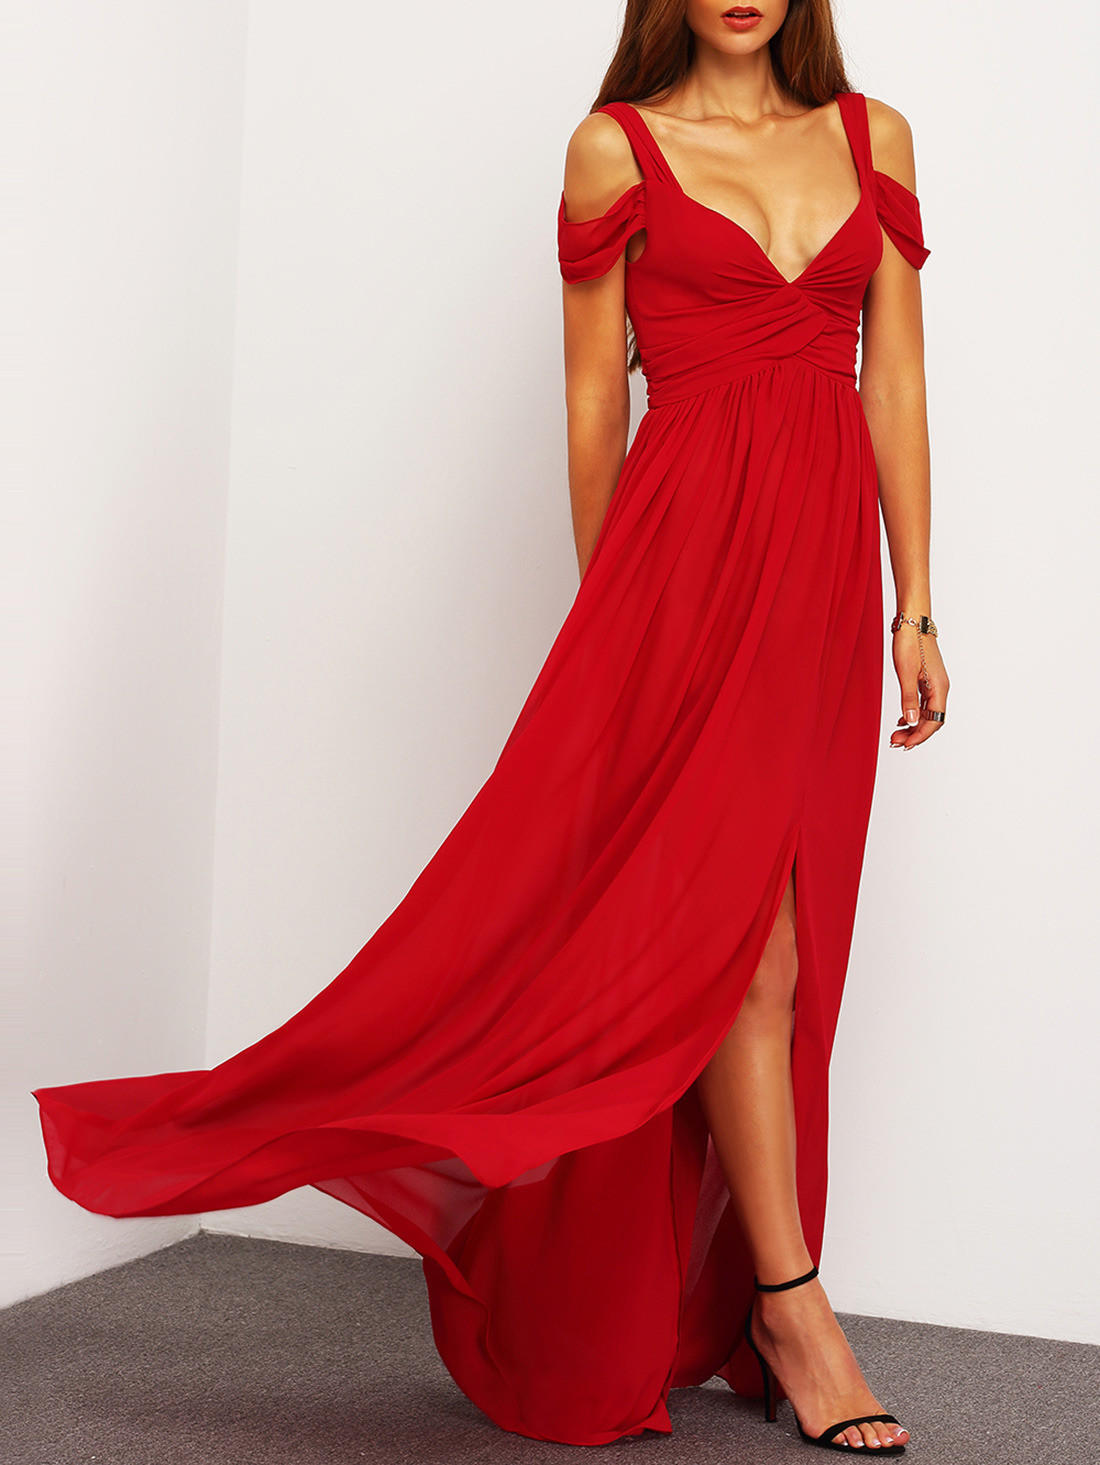 0793e011e8 ♡ Red Off The Shoulder Maxi Dress ♡ from Crystalline